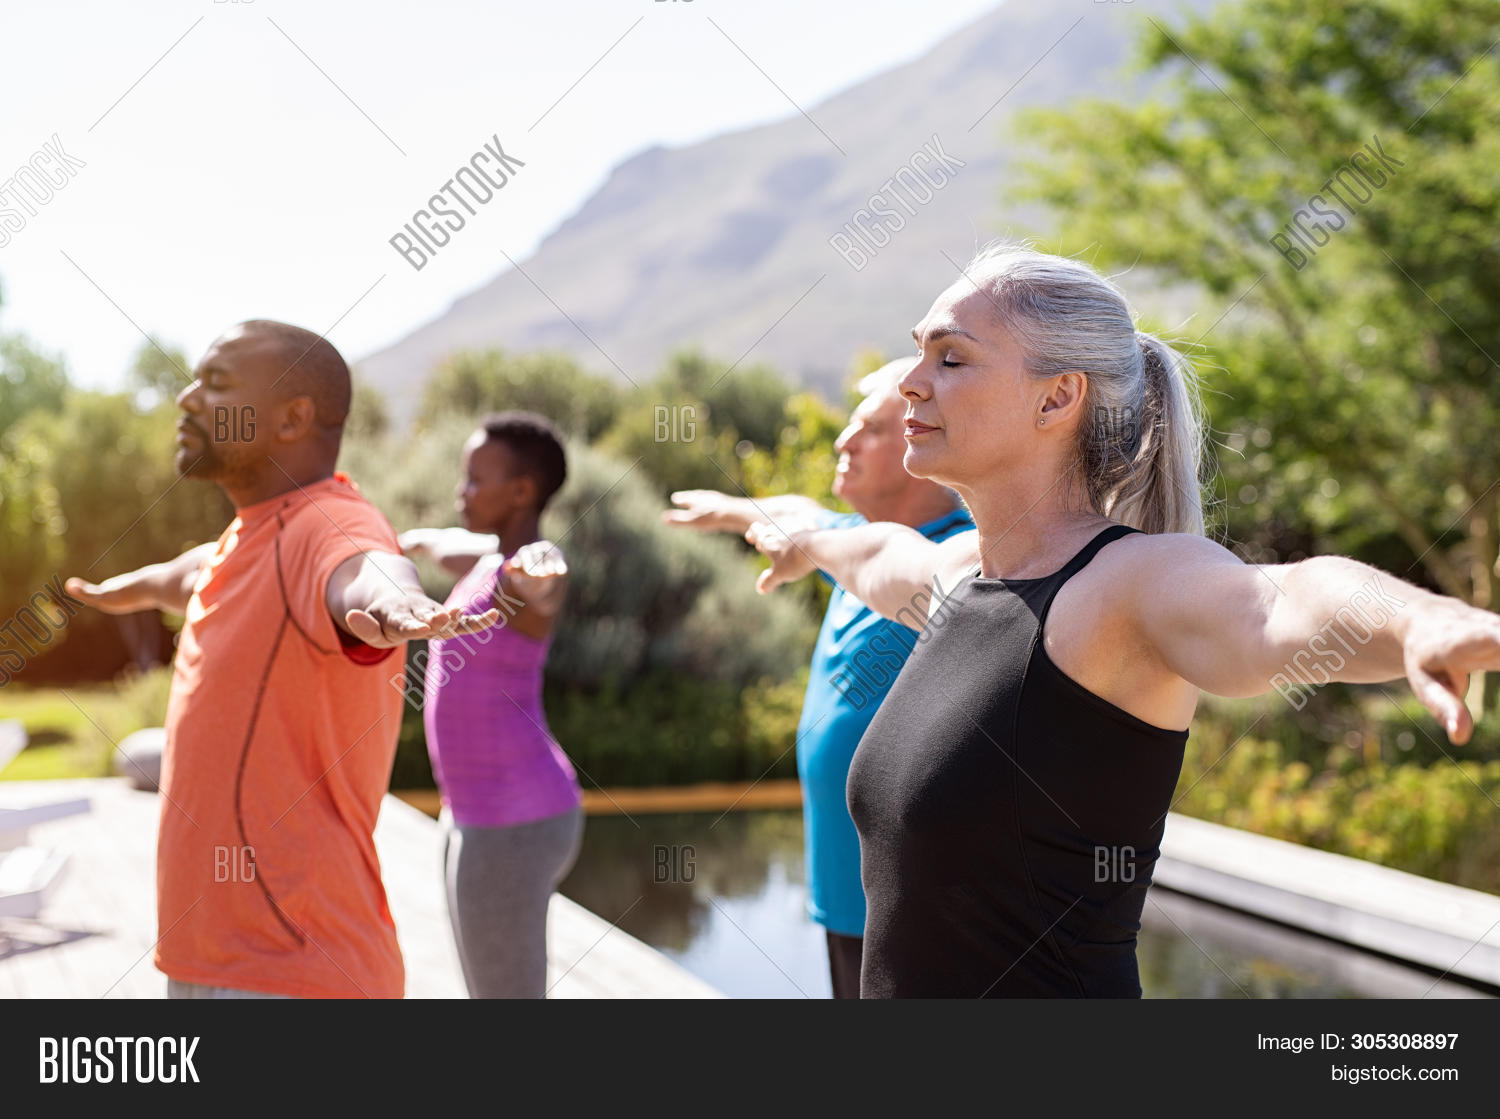 active,active seniors,african,american,arm,balance,black,breath,breathing,breathing exercise,class,closed eyes,concentration,elderly,exercise,fit,fitness,group,health,healthy,man,mature,meditation,mid adult man,middle aged couple,middle aged man,middle aged woman,multi ethnic group,multiethnic,outdoor,outdoors,outstretched arms,people,pilates,positive,posture,relax,senior,senior couple,serene,sport,stretch,stretching exercises,summer,wellbeing,wellness,woman,workout,yoga,yoga poses